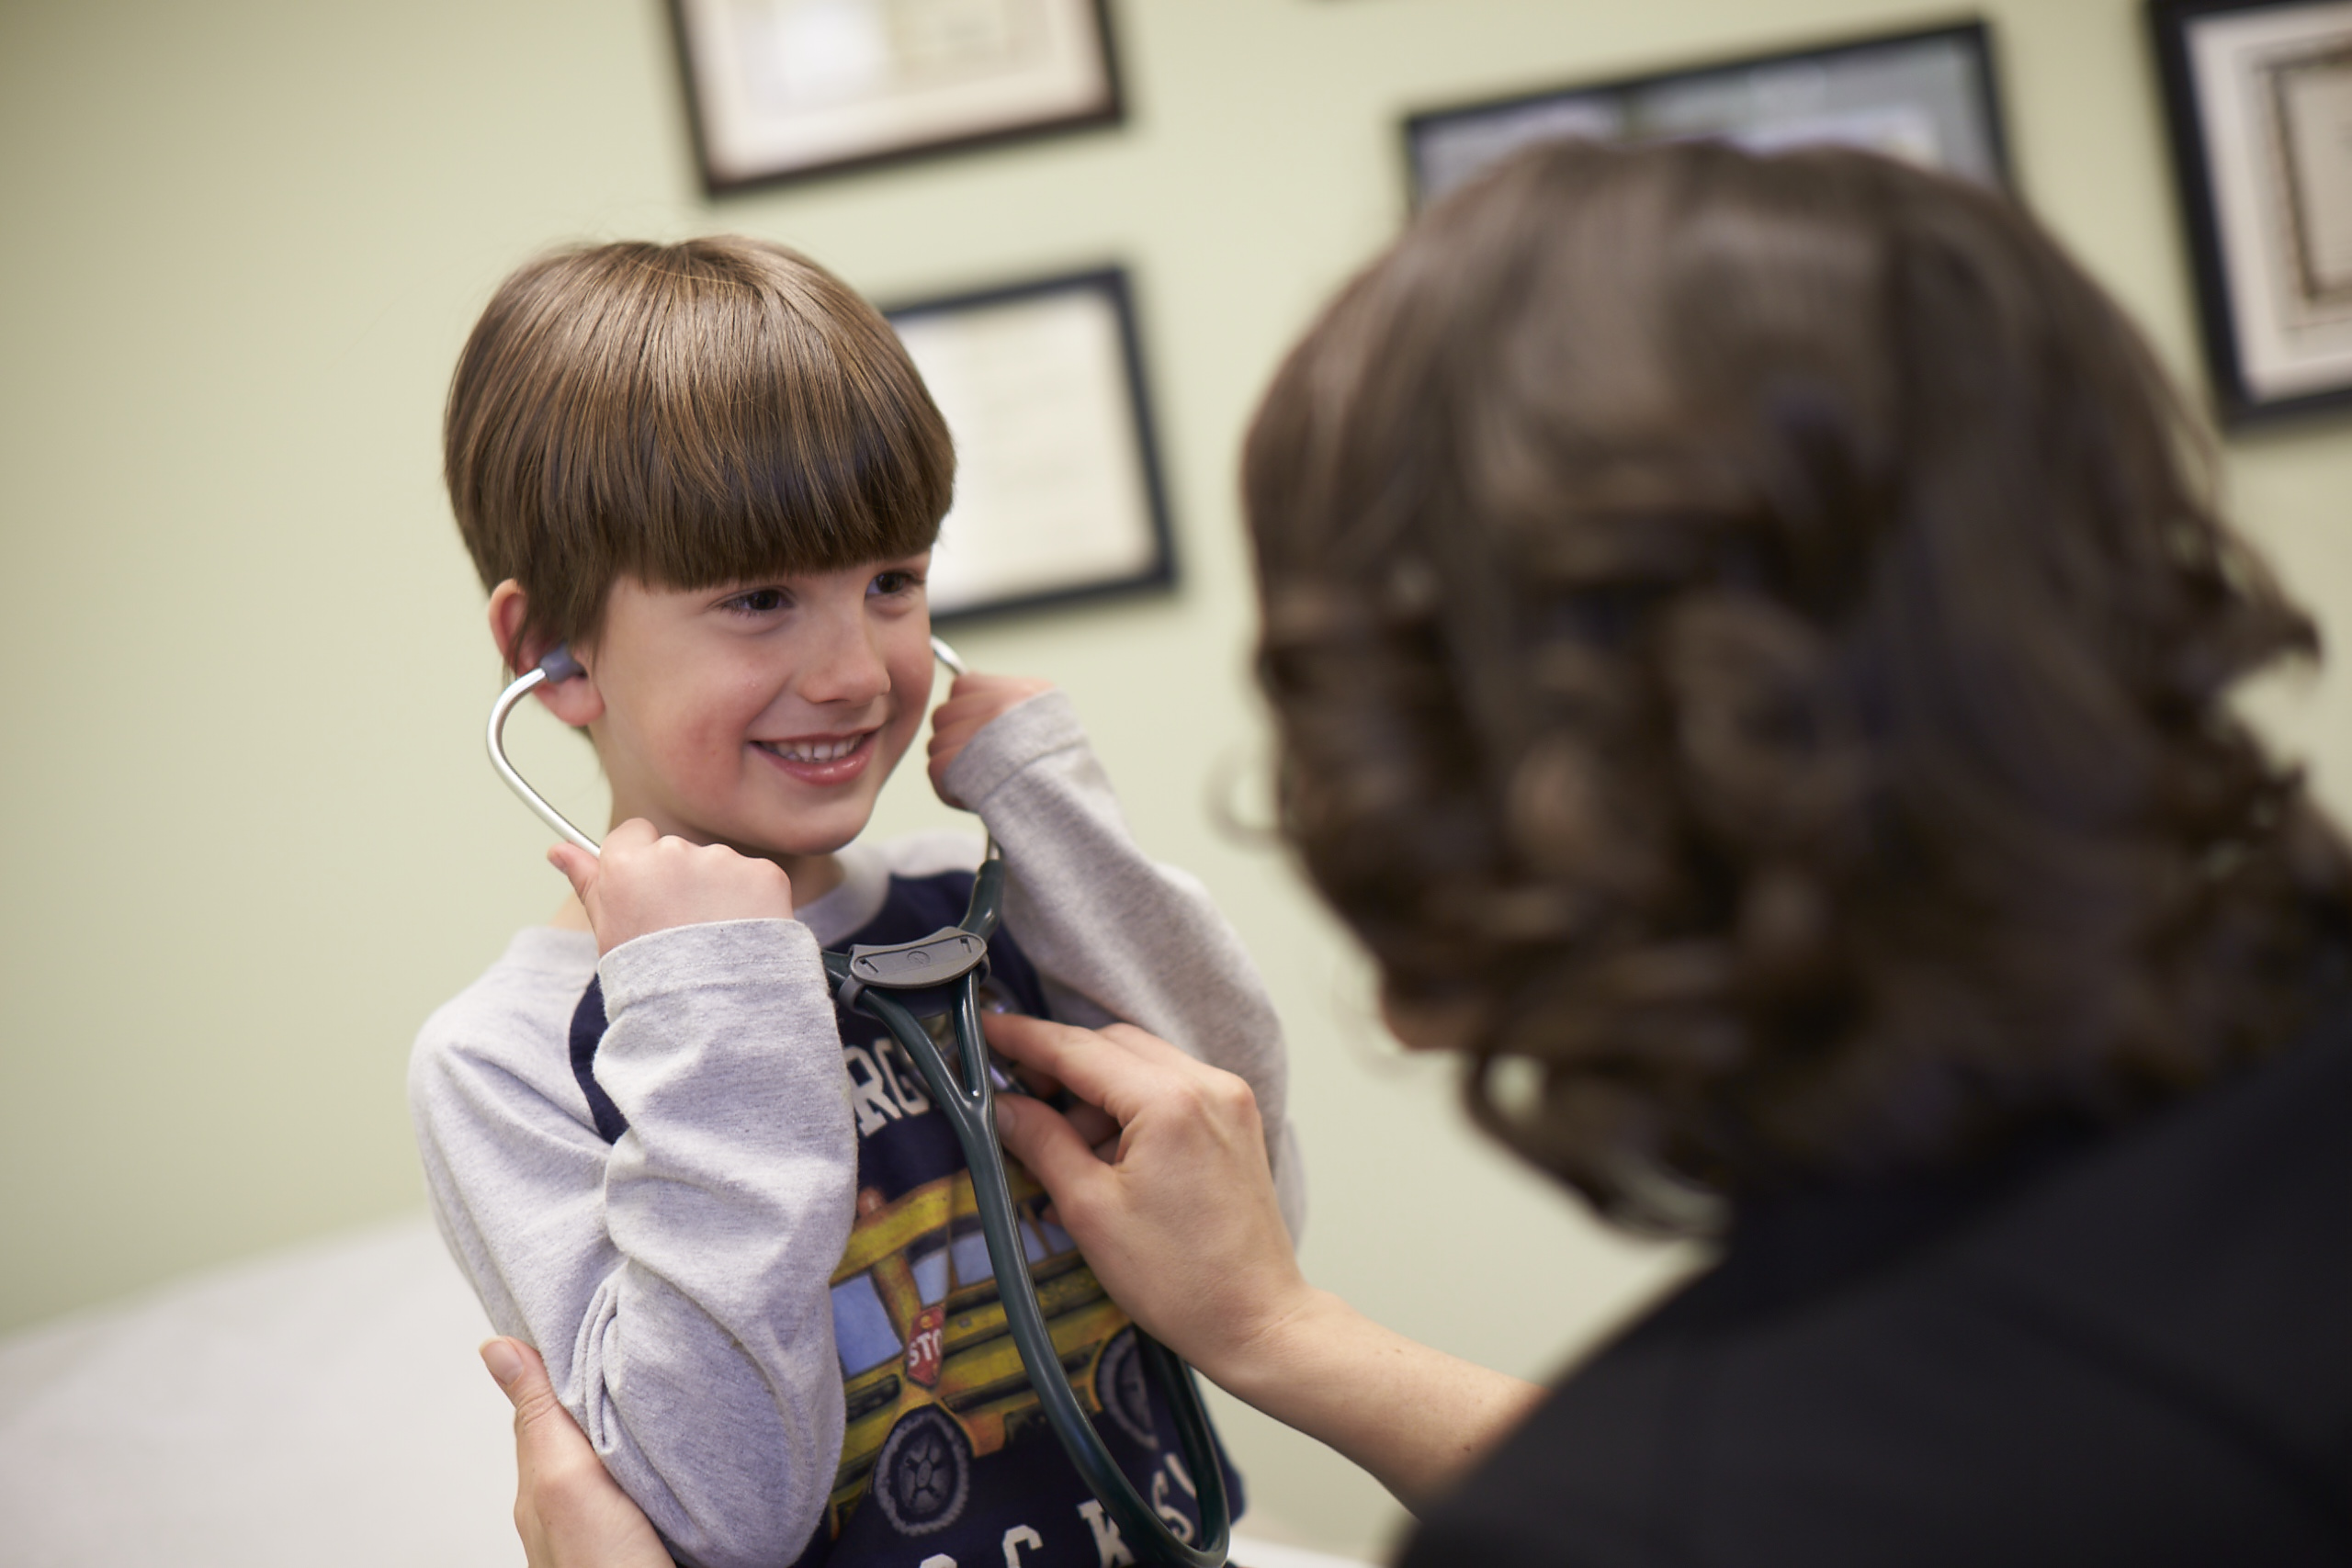 Doctor Samantha Eagle lets a boy listen to his heartbeat through a stethoscope.